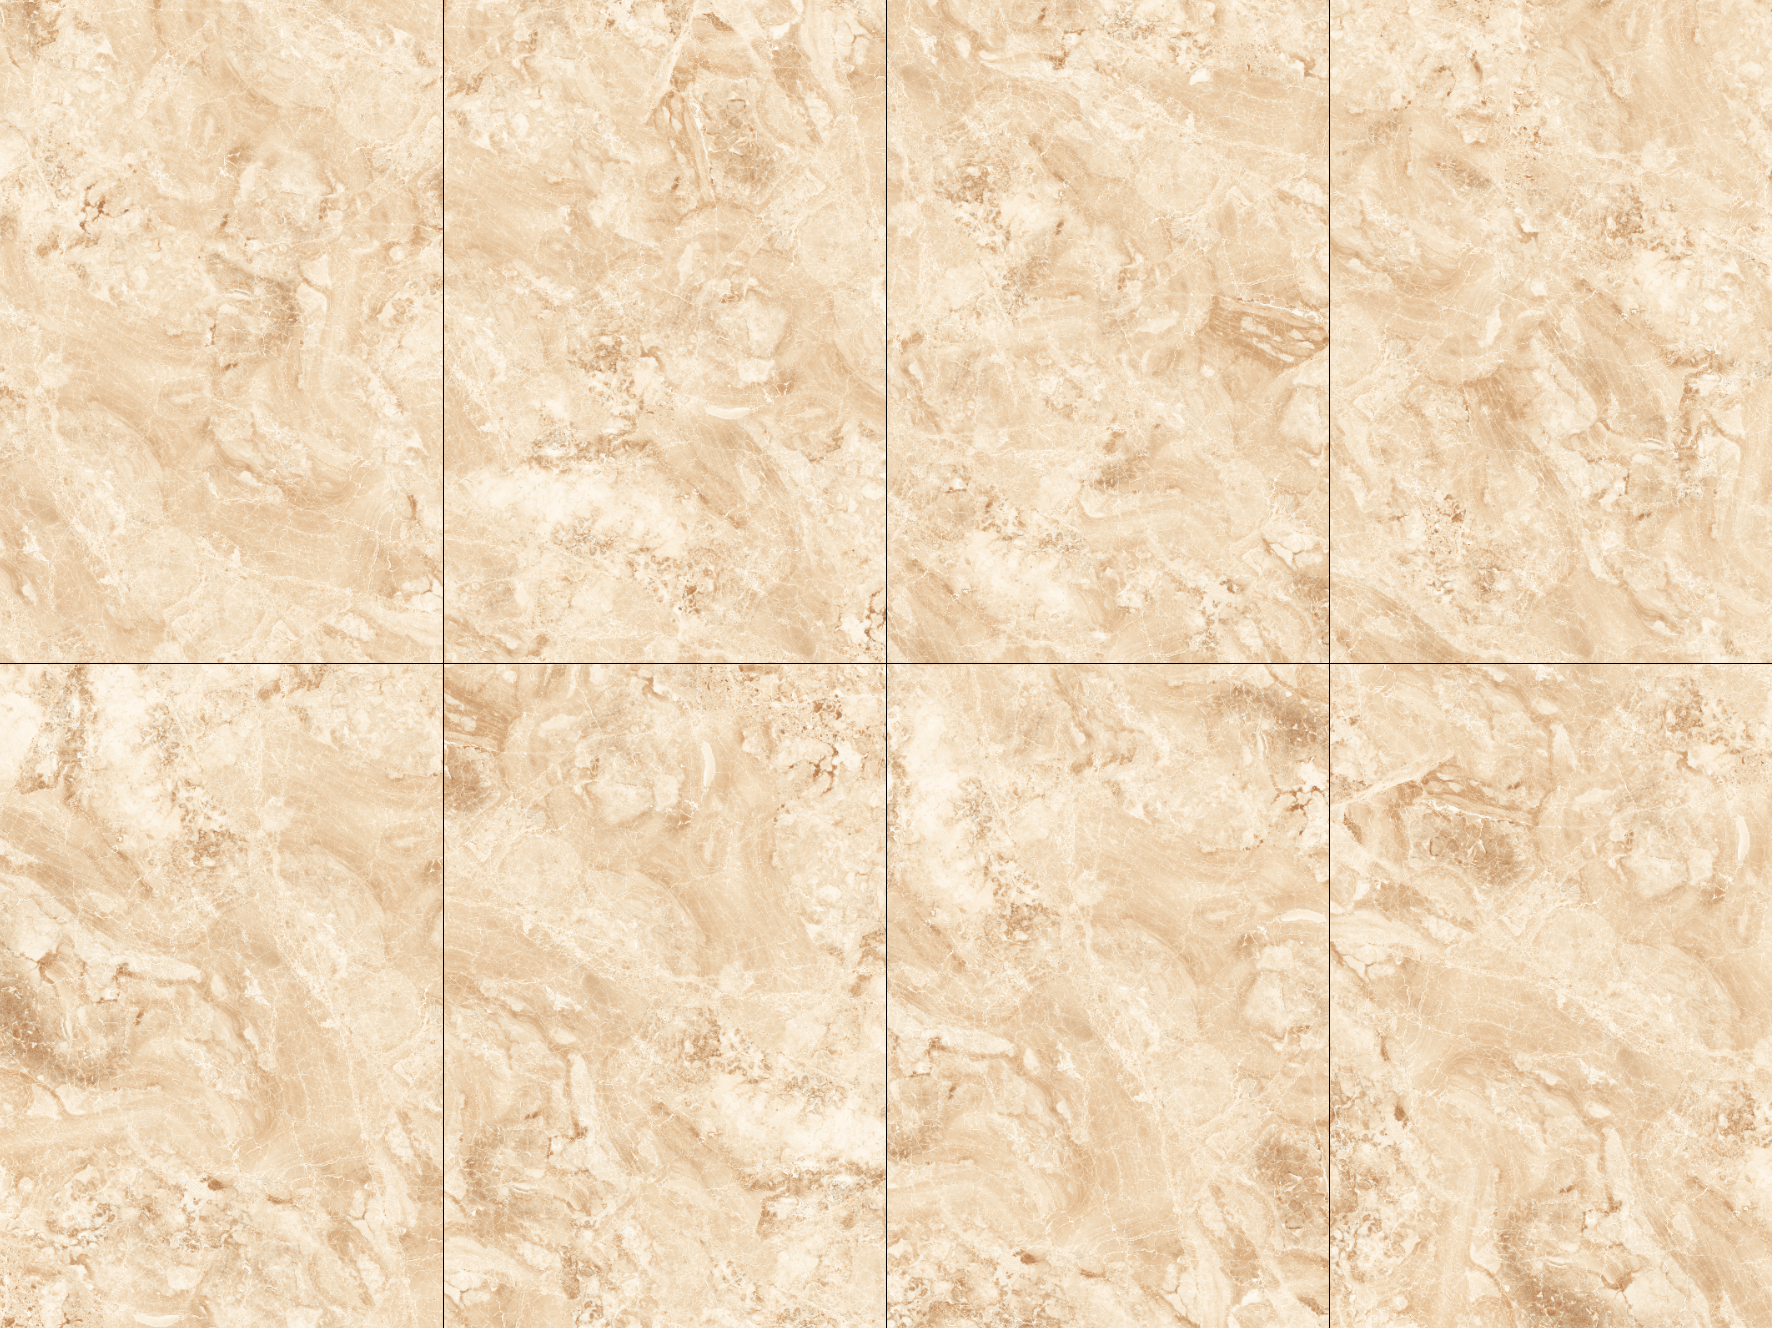 high-end space Beige Marble Tiles